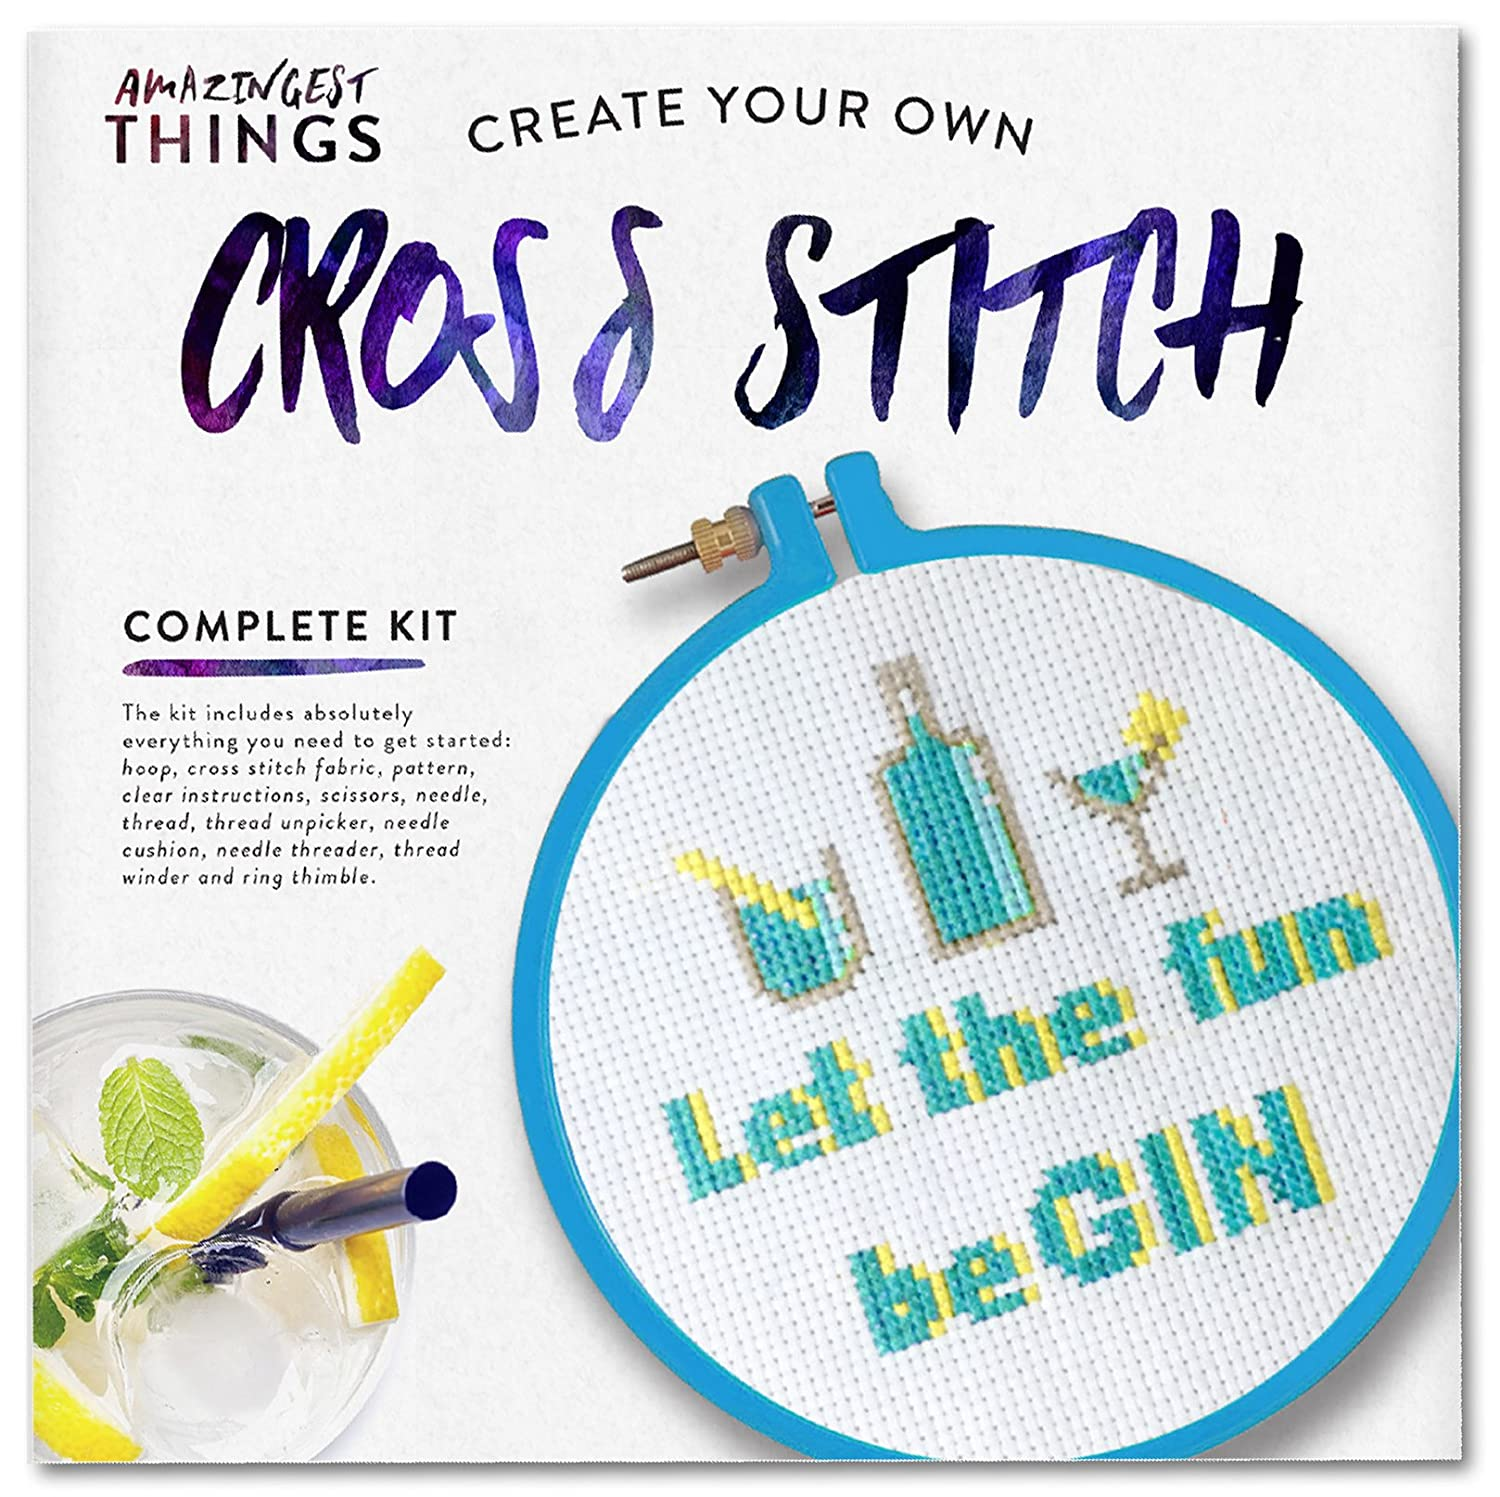 Arts,crafts & Sewing Sporting Cross Stitch Needle Total 100 Pieces Fashionable Patterns Home & Garden